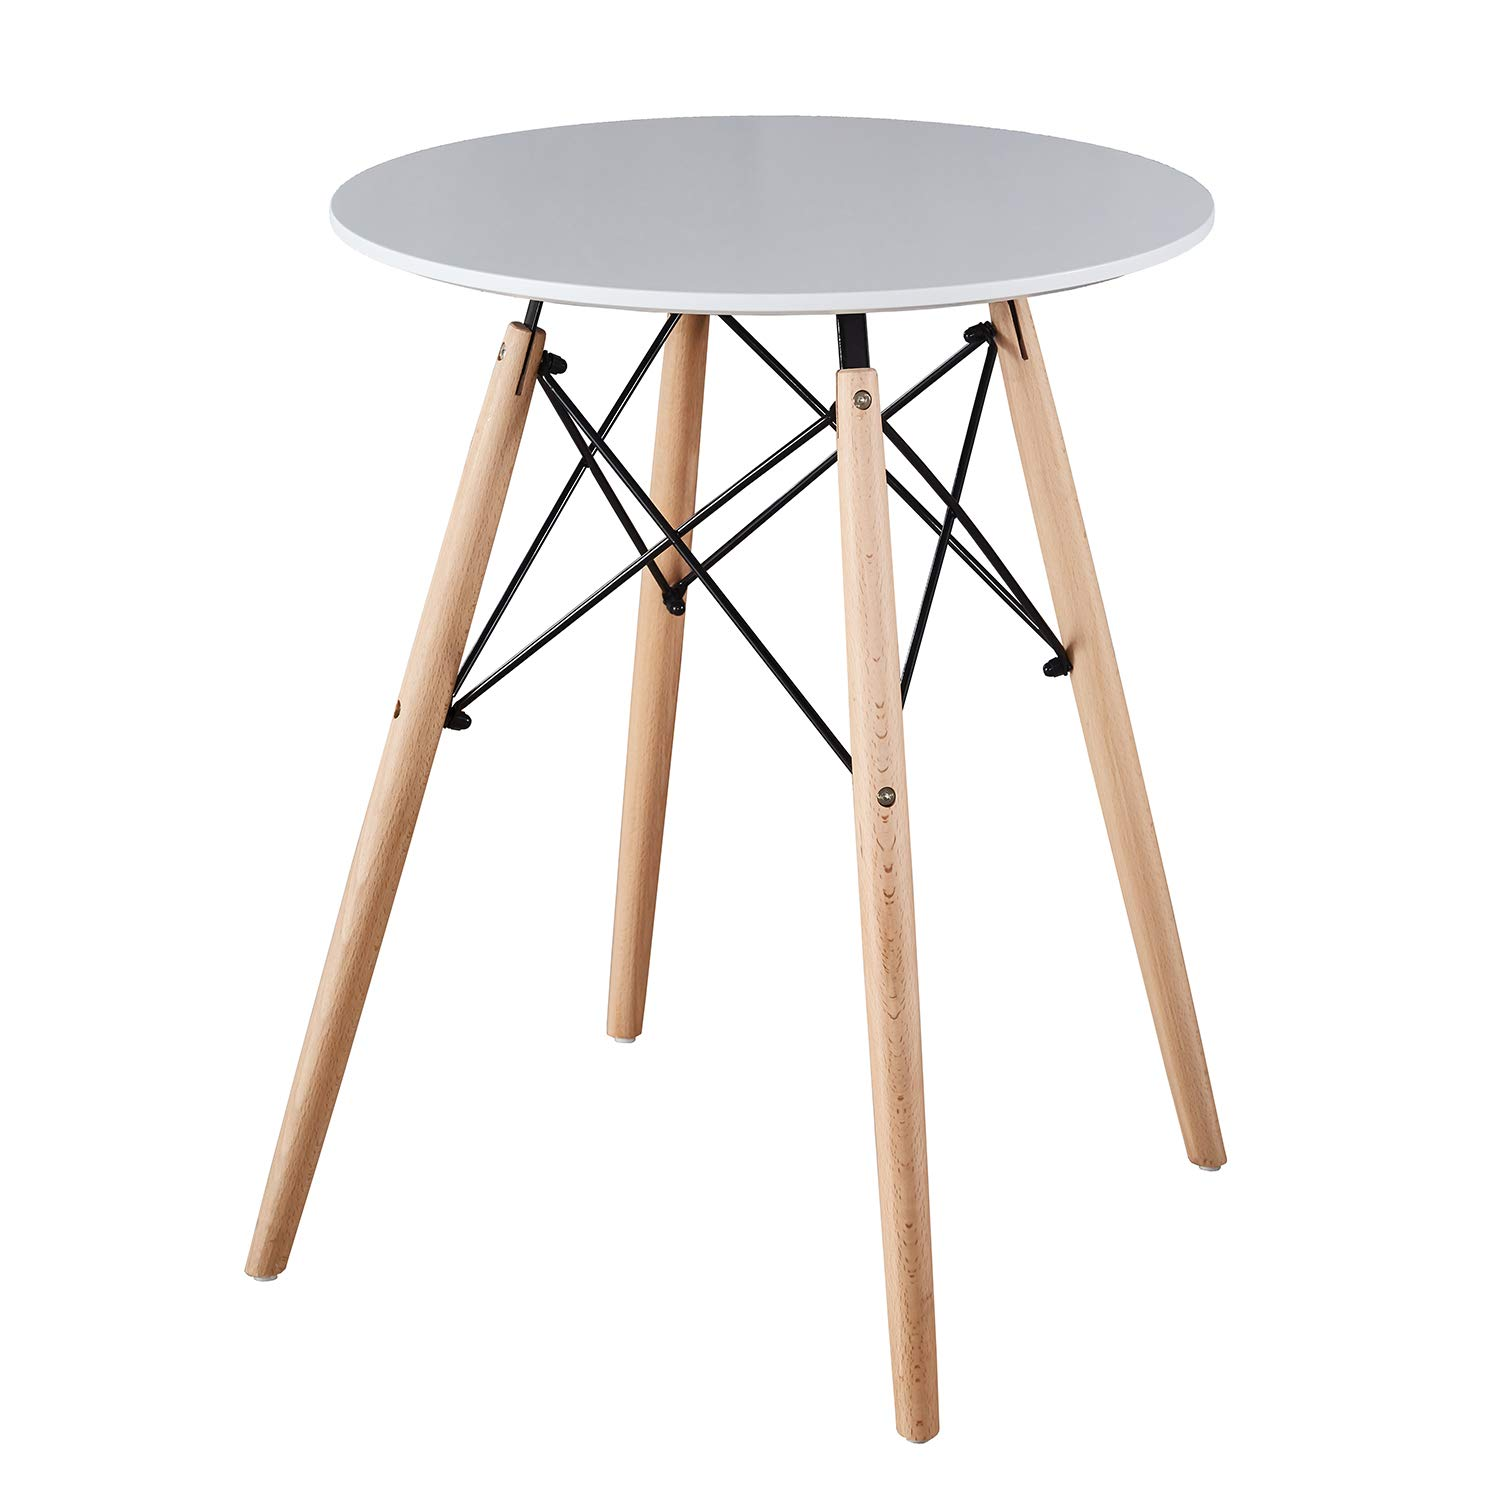 Mid Century Modern Eames Style Circular Kitchen Dining Table Office Conference Desk Round Coffee Table Leisure Wood Tea Table with Natural Solid Wooden Legs and MDF top(Diameter 60CM, White)